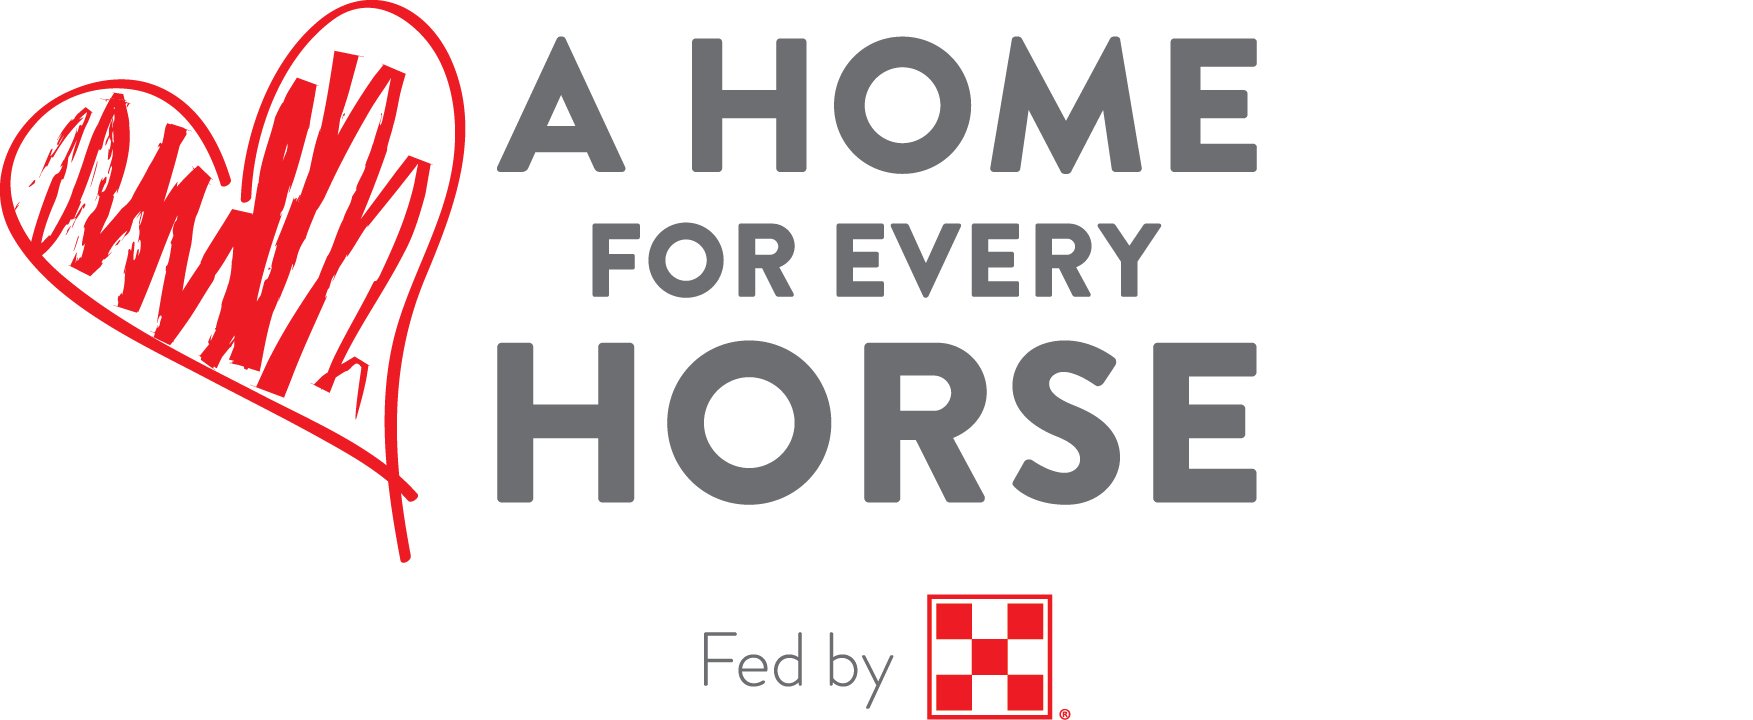 A Home For Every Horse - logo